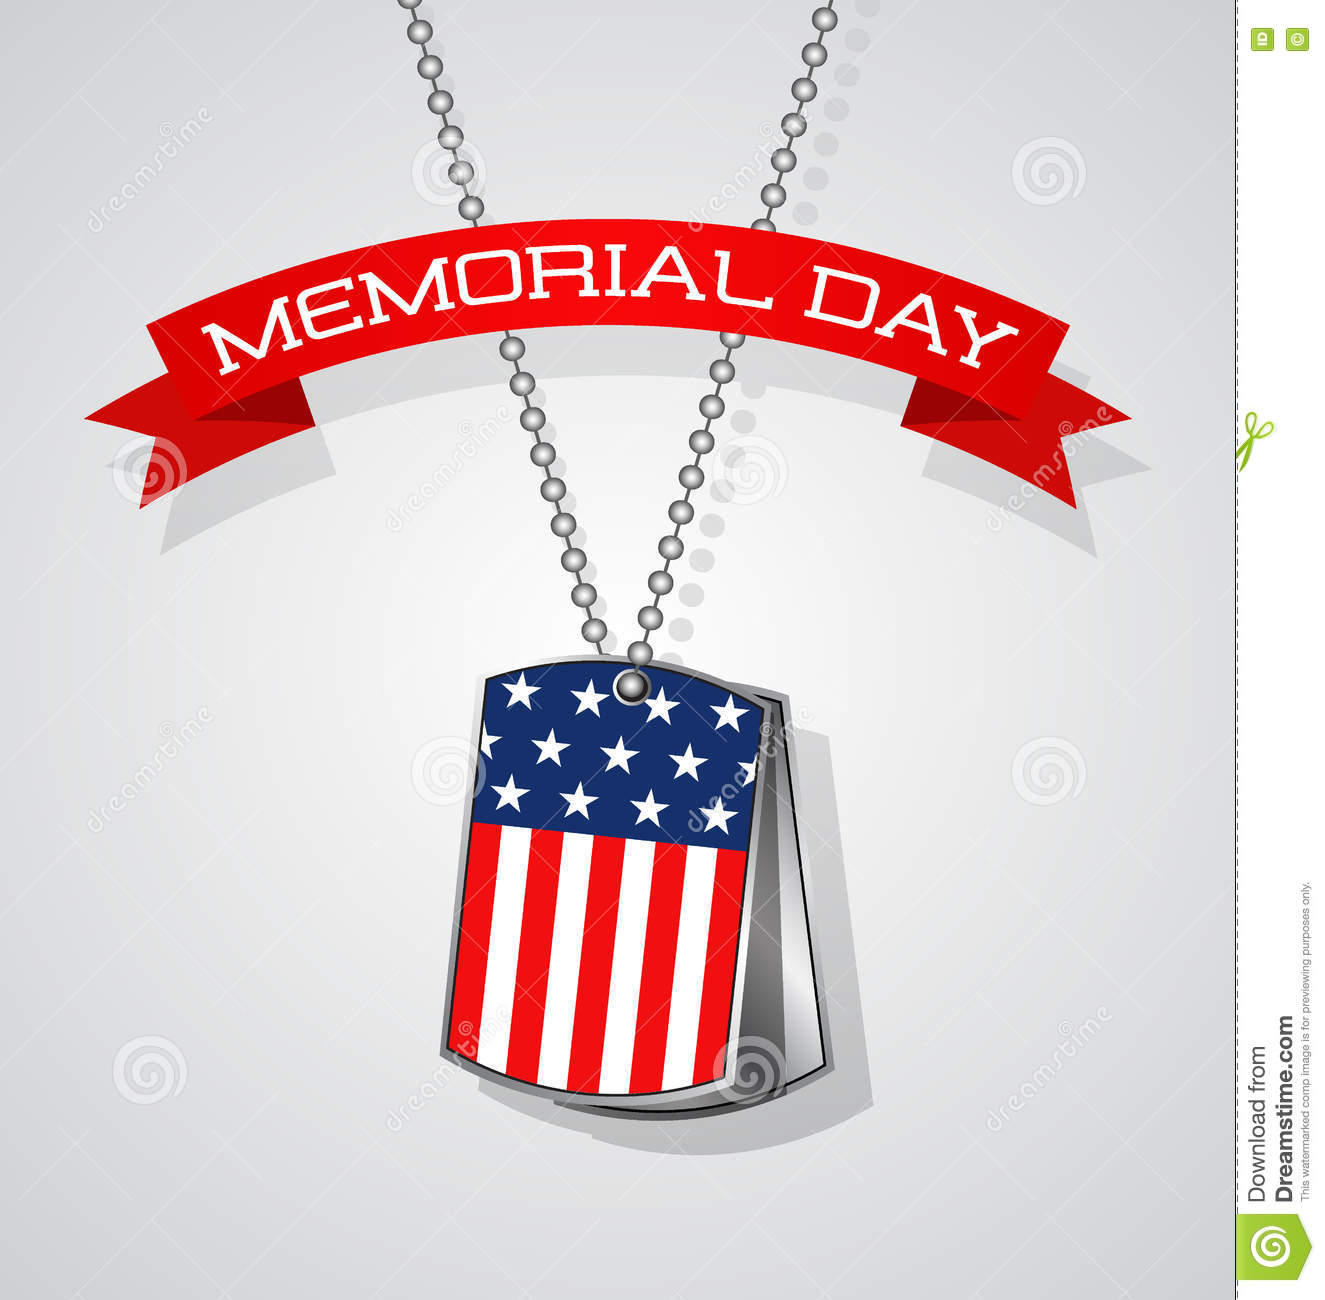 memorial day banner with american flag and soldier on it stock